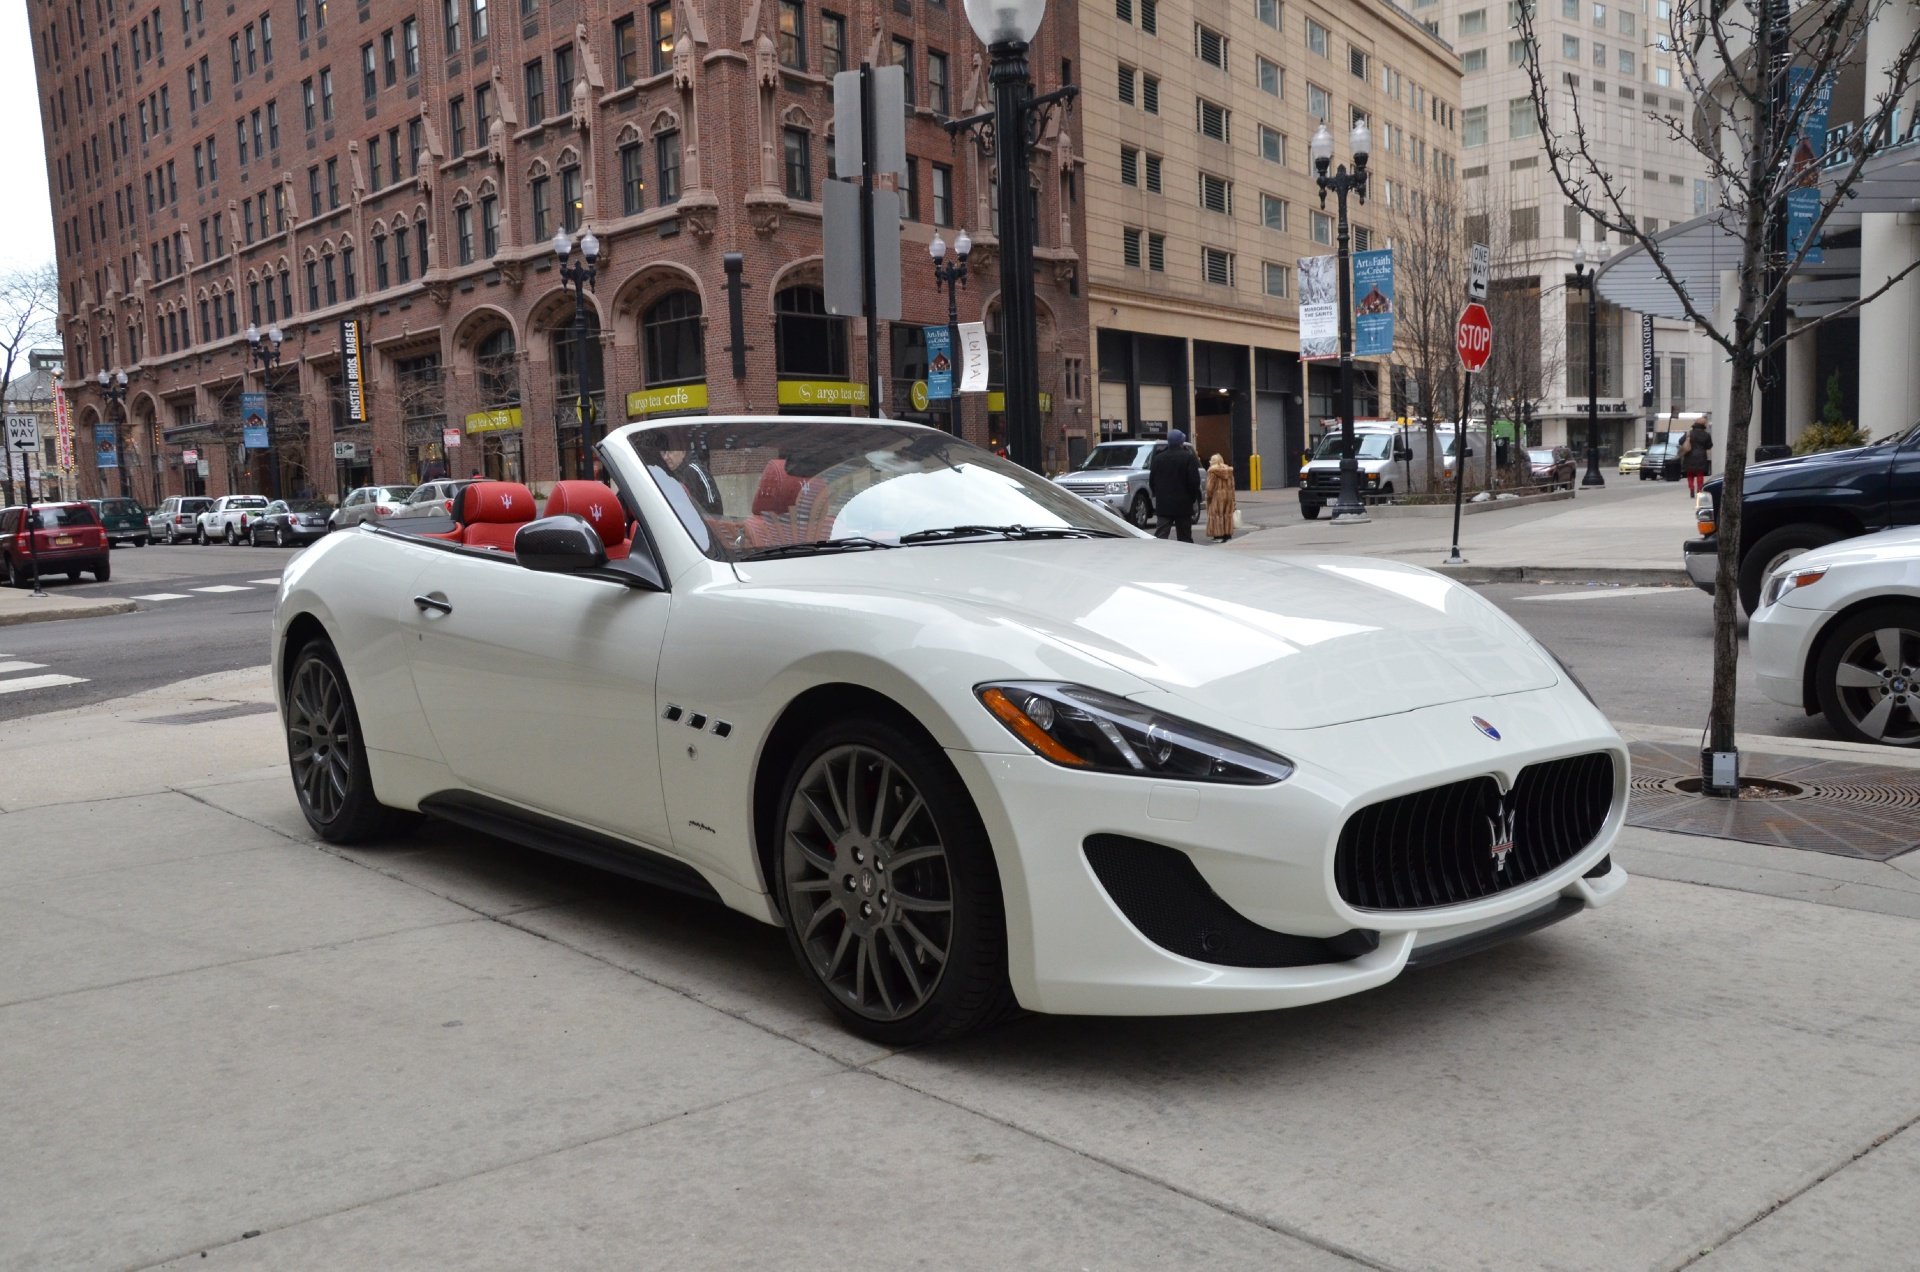 2013 maserati granturismo convertible sport sport stock m092 s for sale near chicago il il. Black Bedroom Furniture Sets. Home Design Ideas